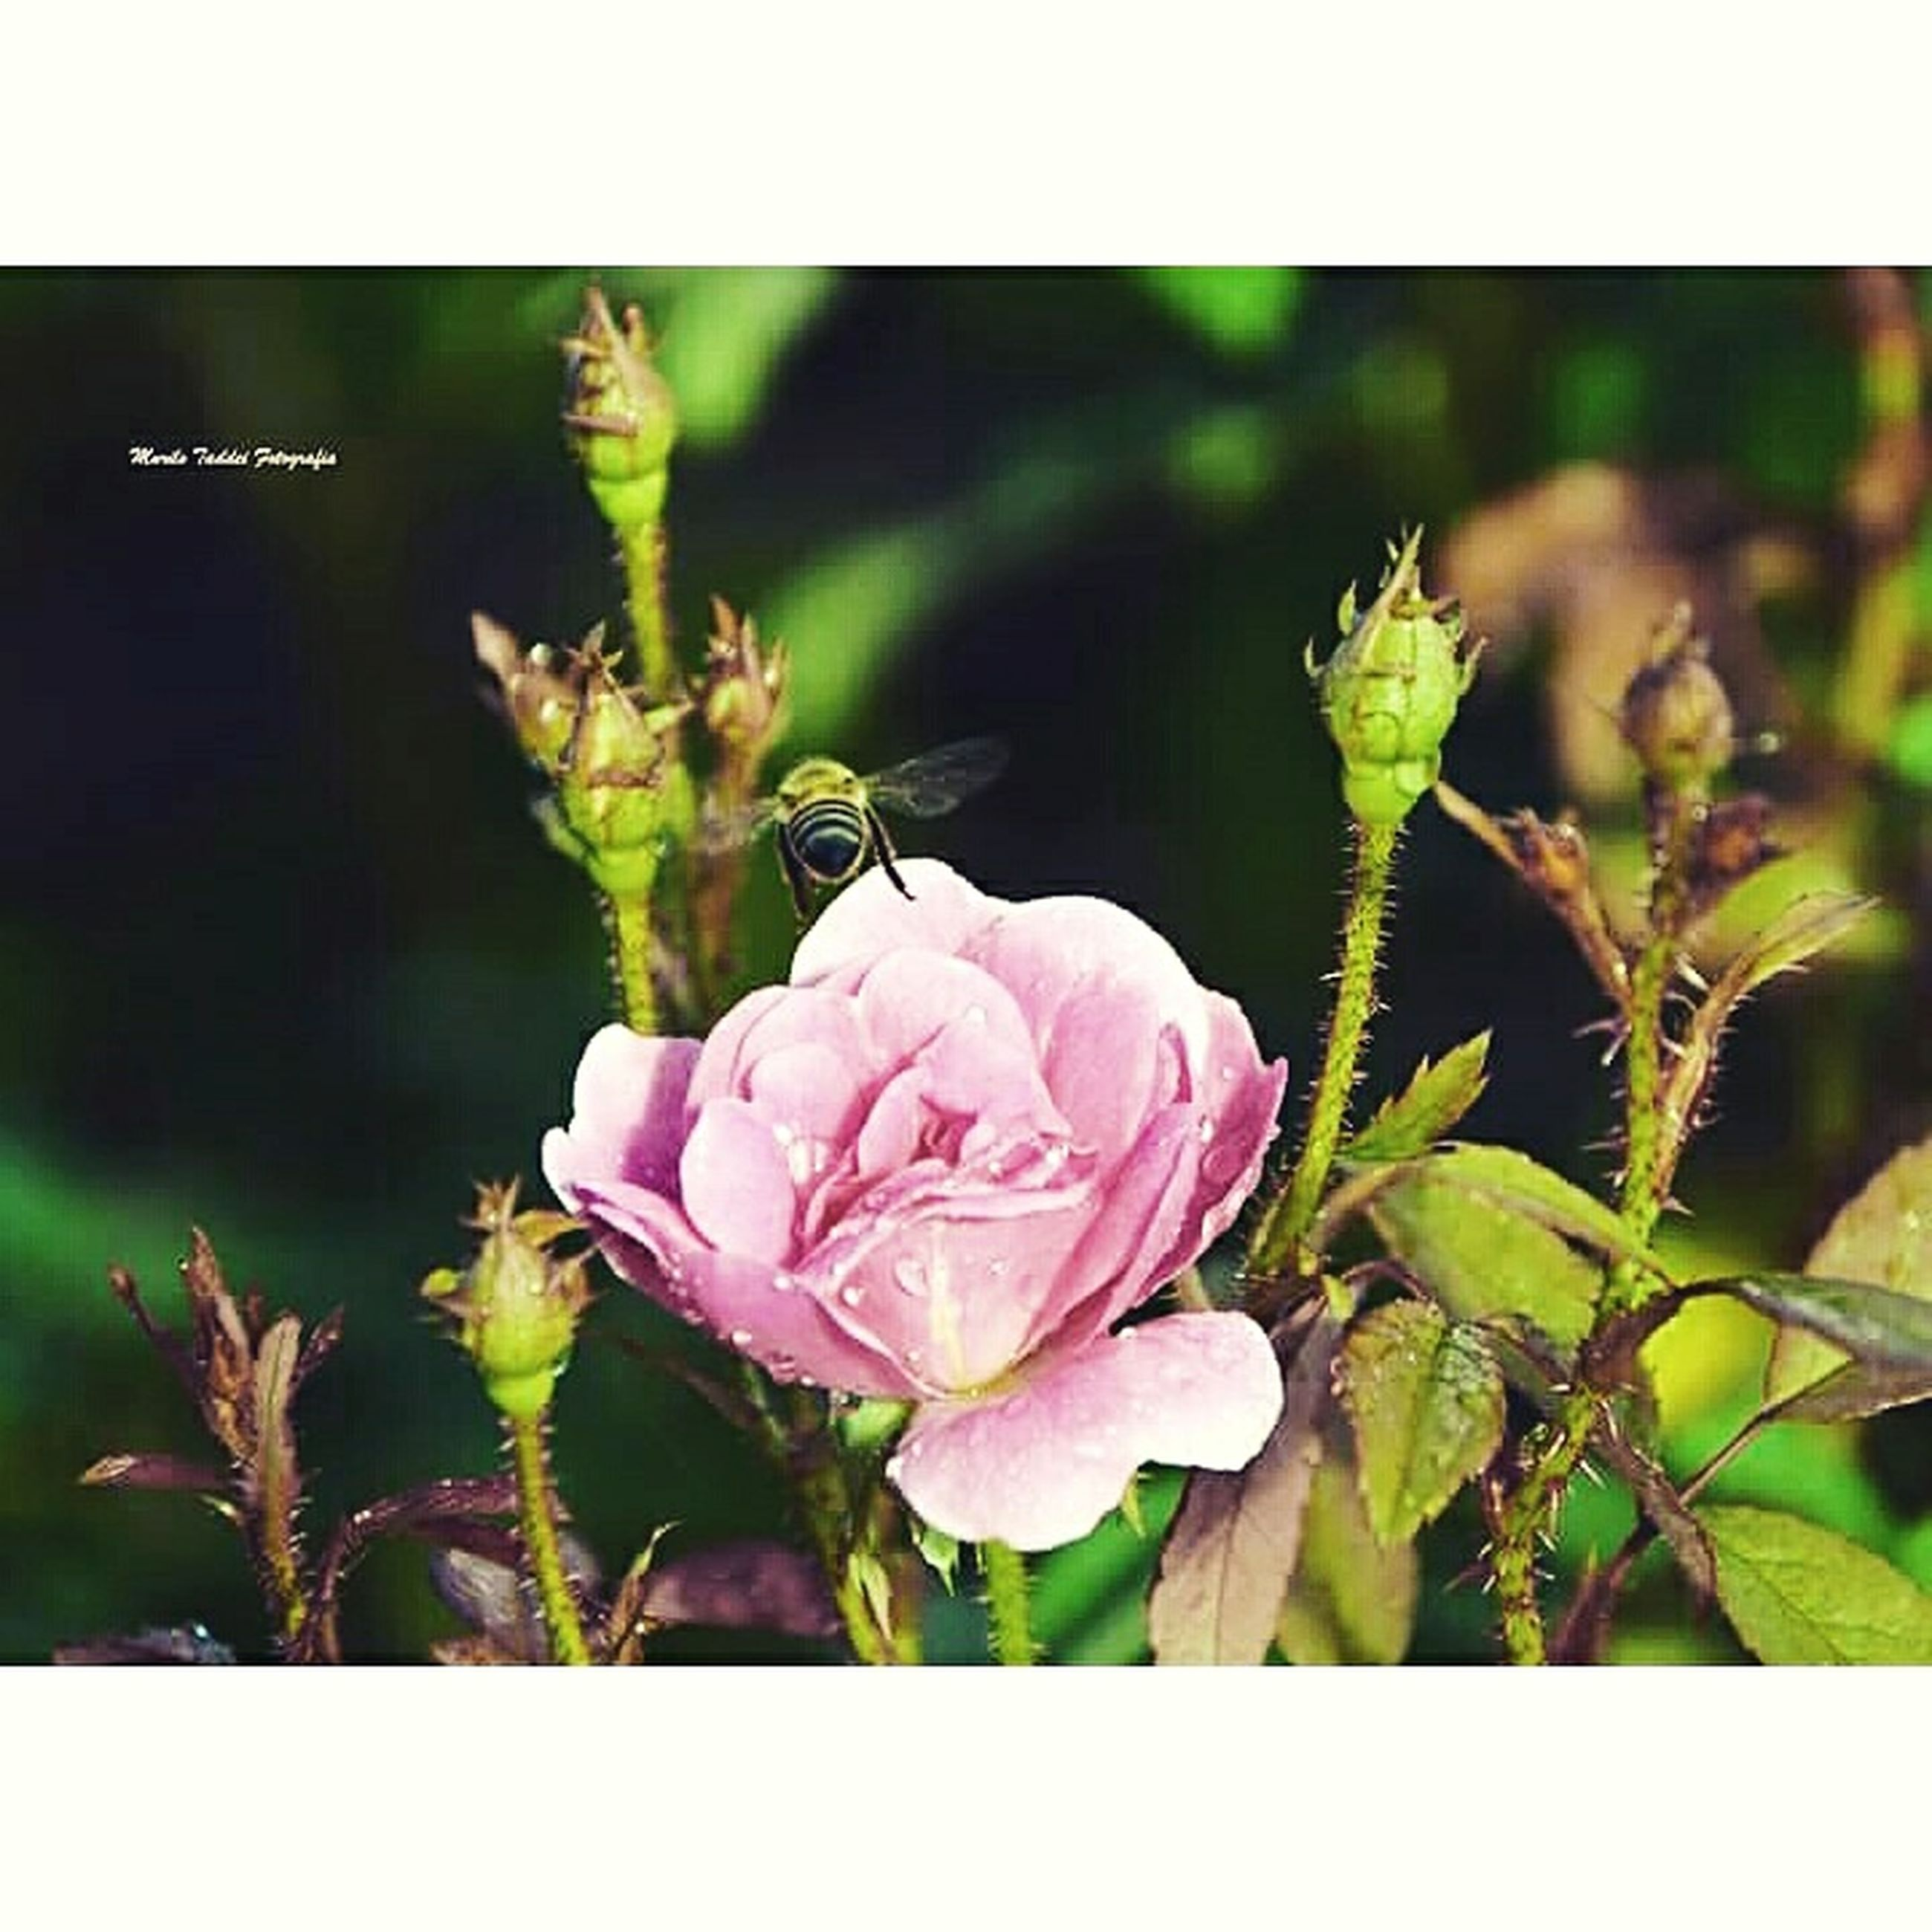 flower, freshness, transfer print, petal, fragility, growth, flower head, beauty in nature, pink color, plant, close-up, auto post production filter, leaf, nature, blooming, focus on foreground, in bloom, blossom, stem, bud